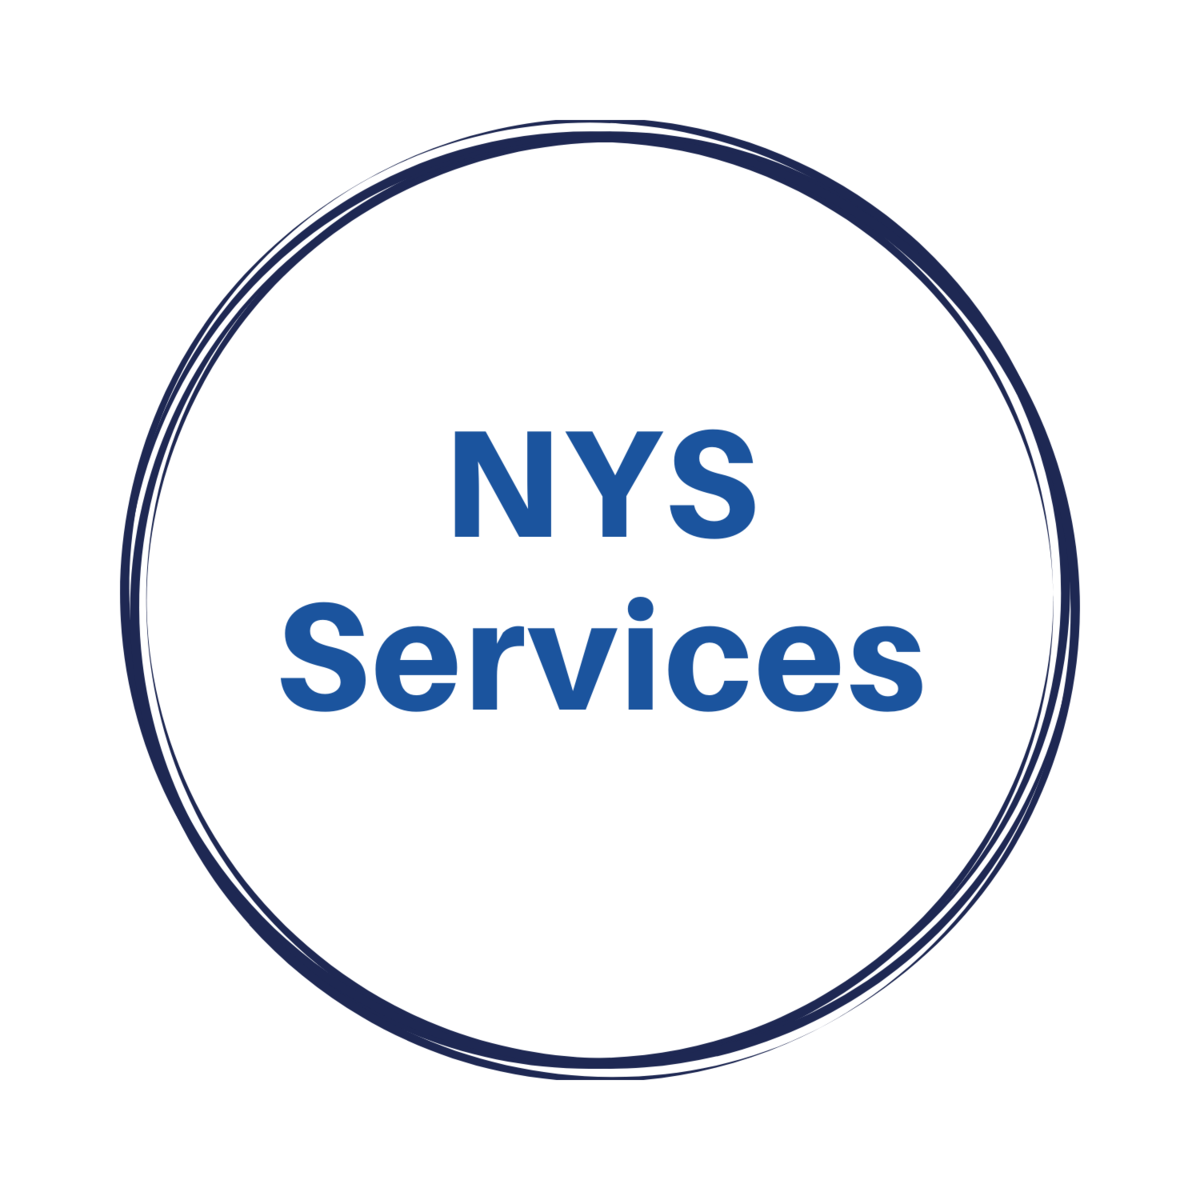 NYS Services